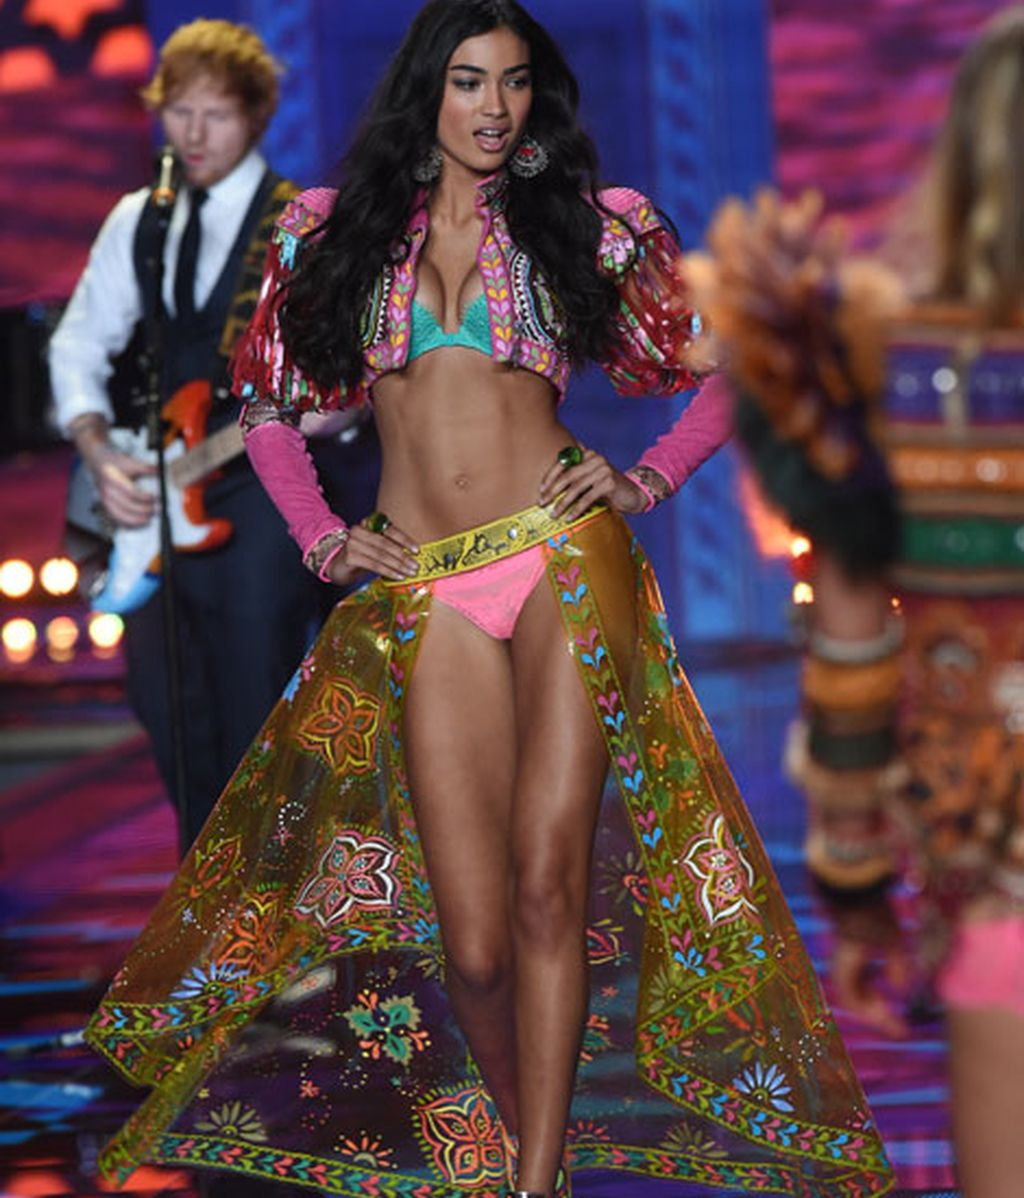 Kelly Gale en su segundo desfile de Victoria's Secret